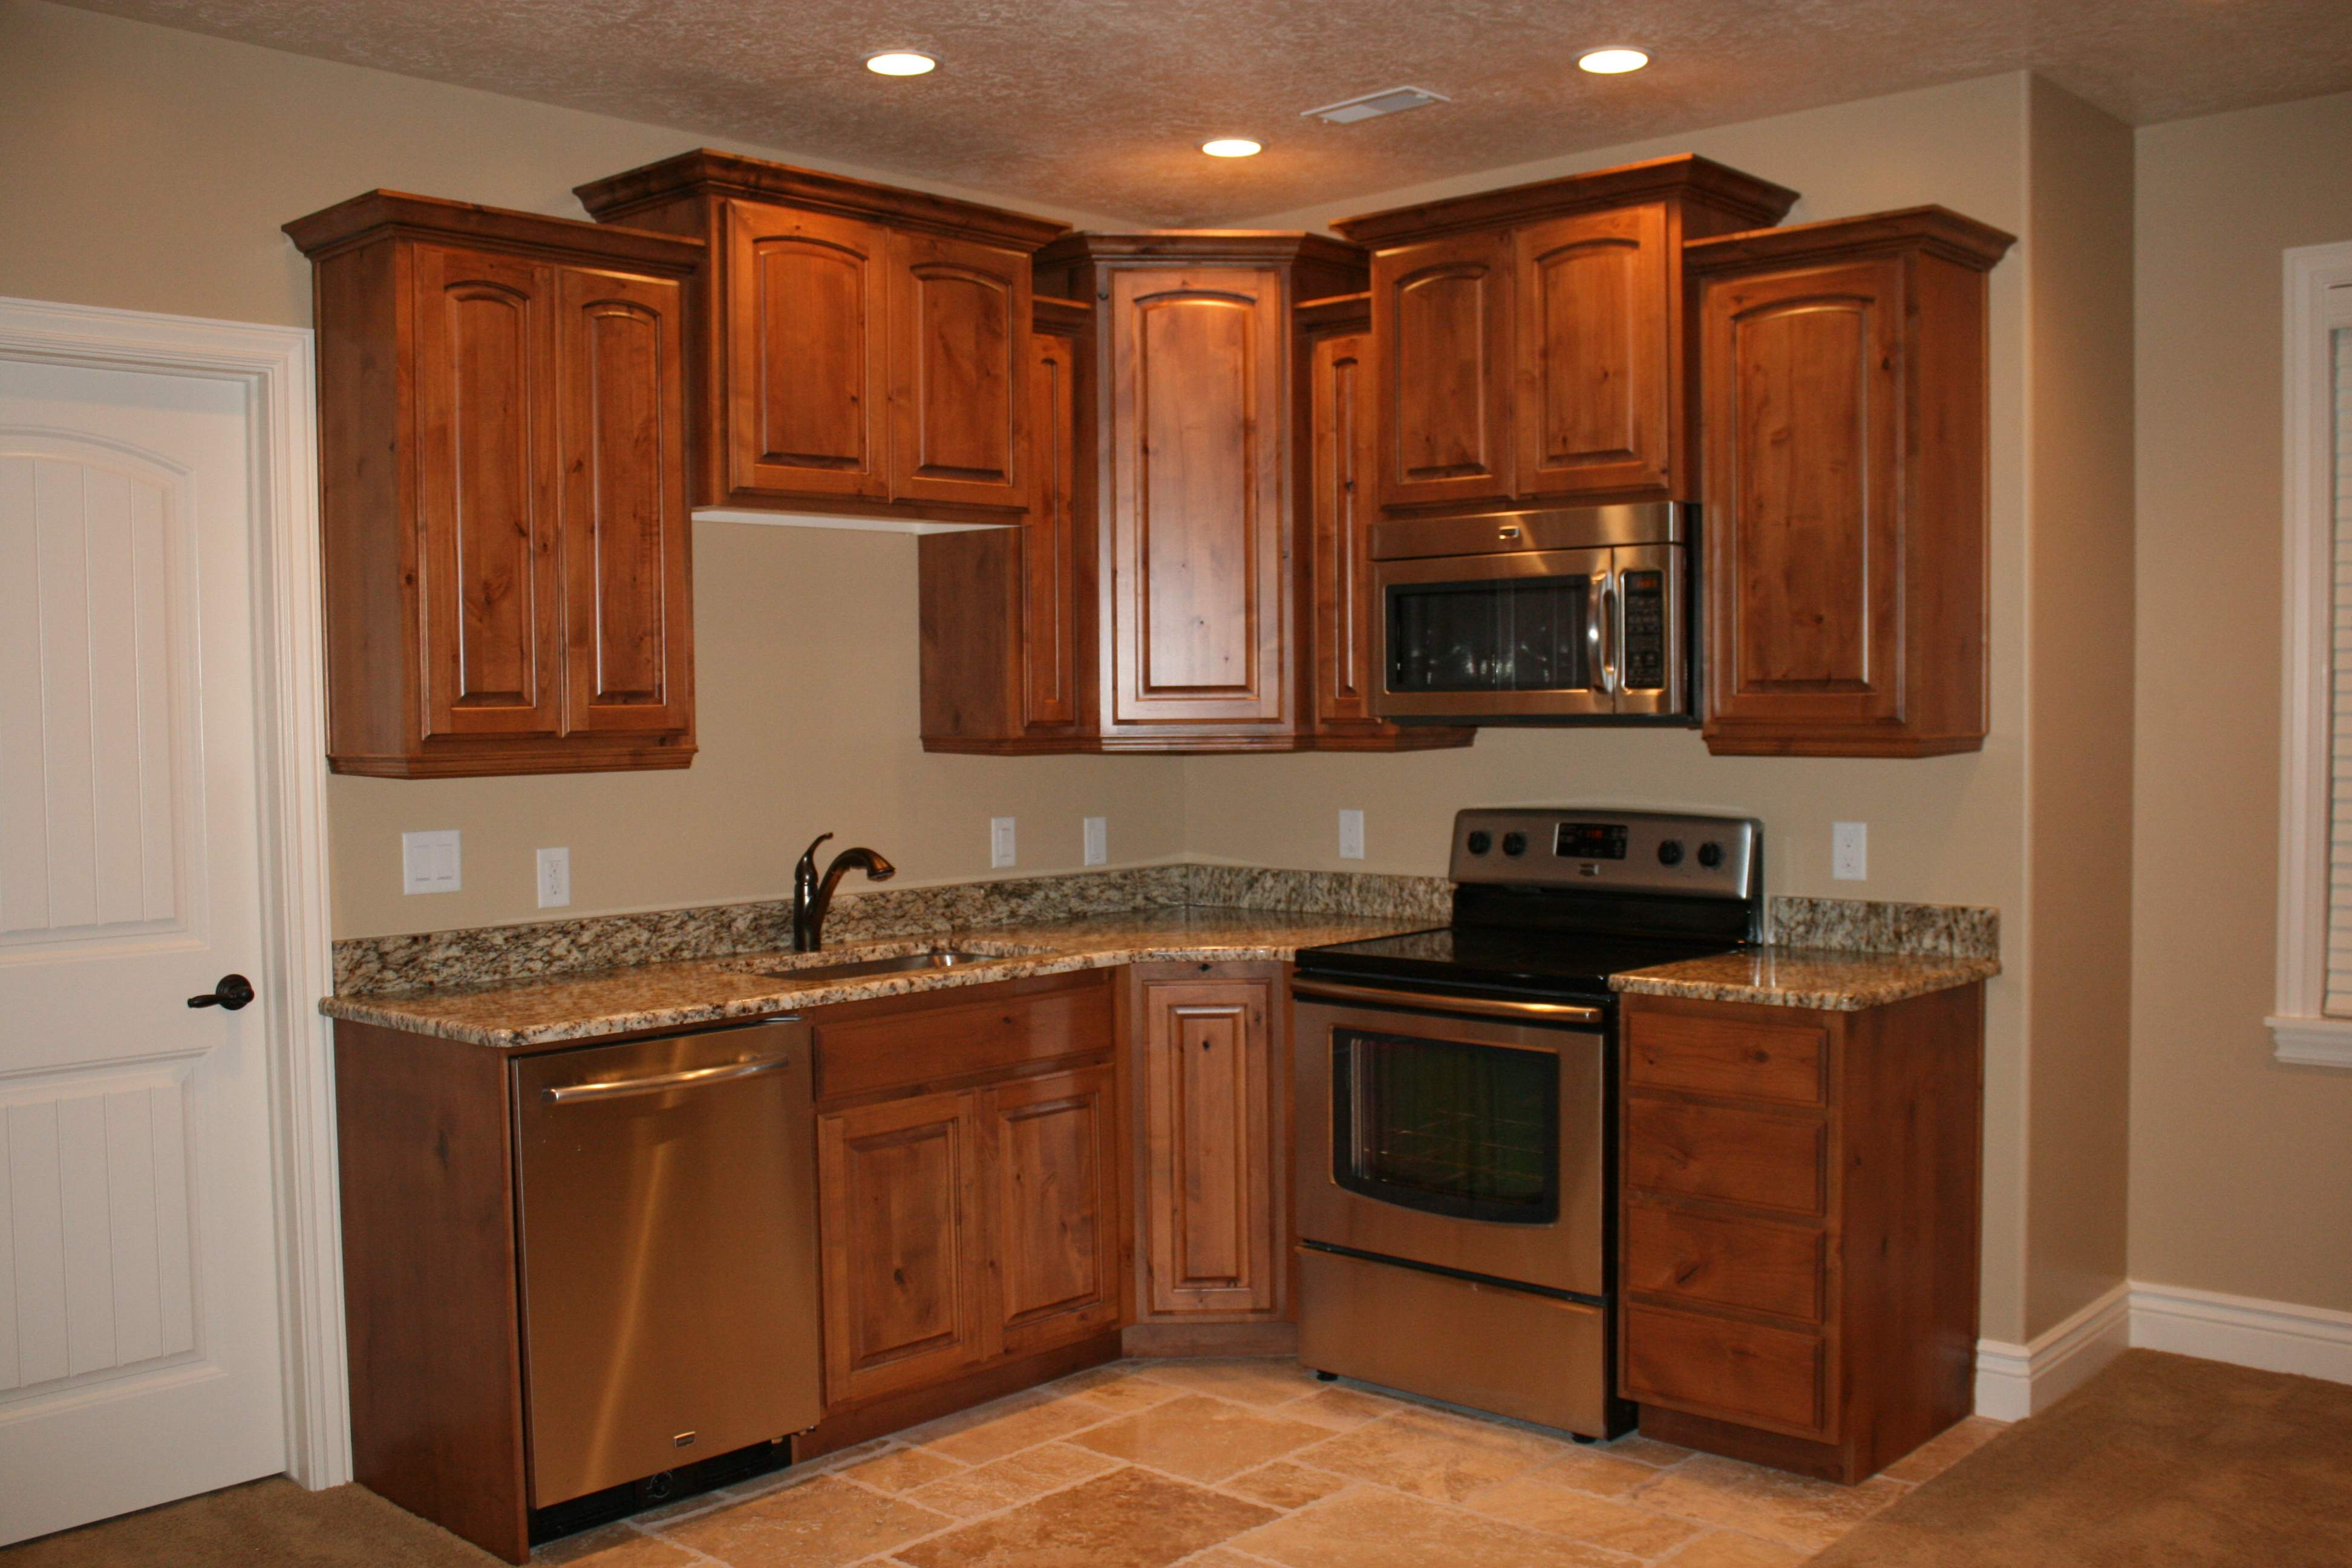 Basement kitchen ideas 28 images basement lighting for for Basement kitchen ideas pictures